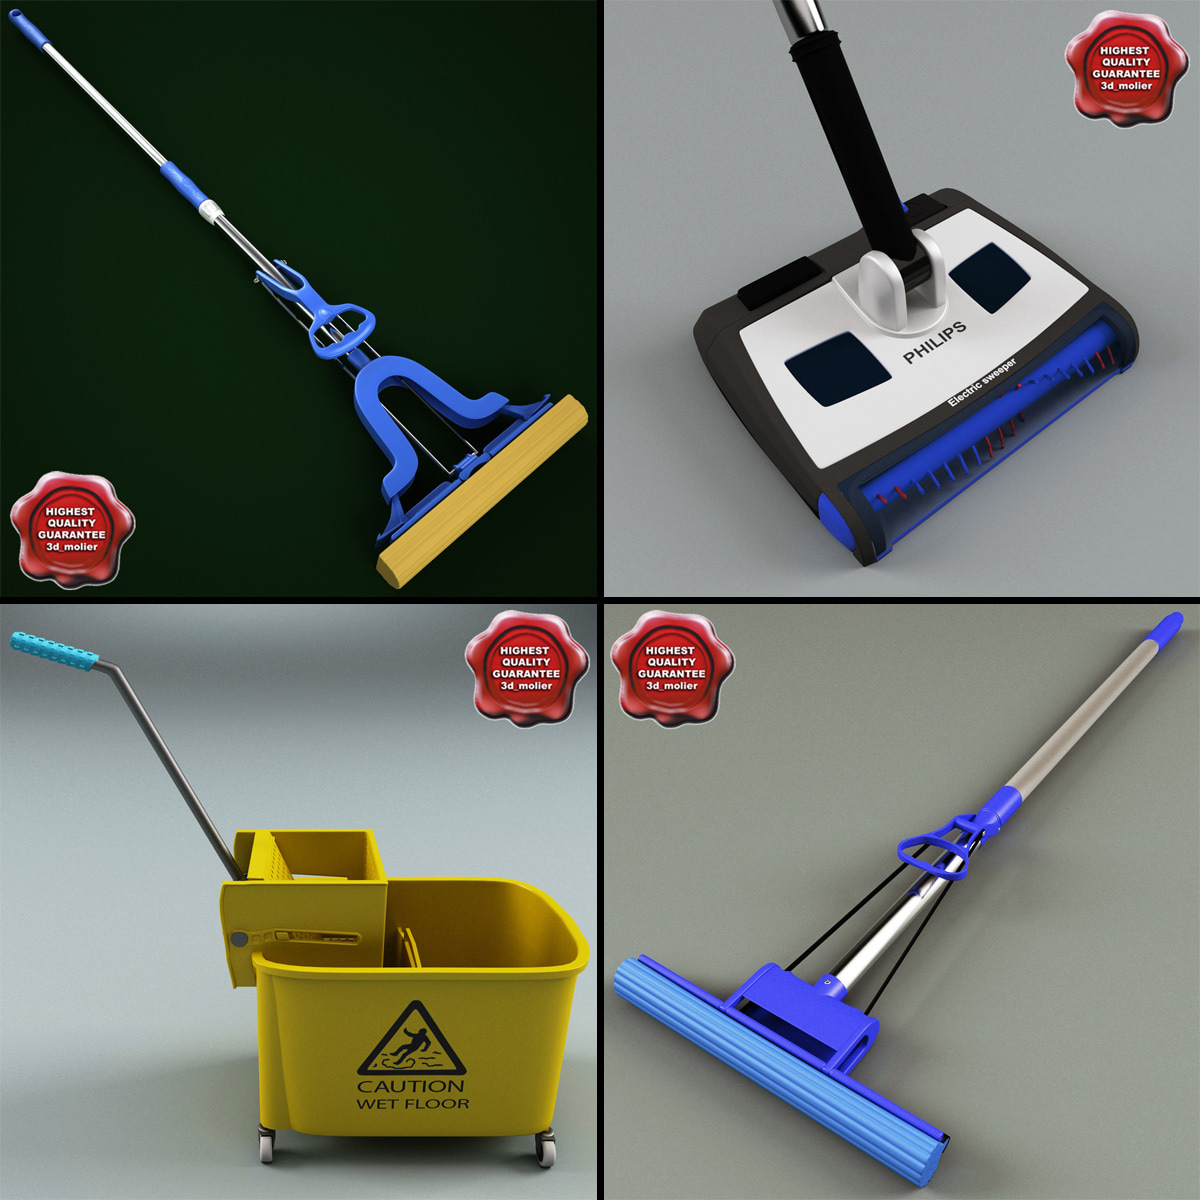 Mops_Collection_00.jpg